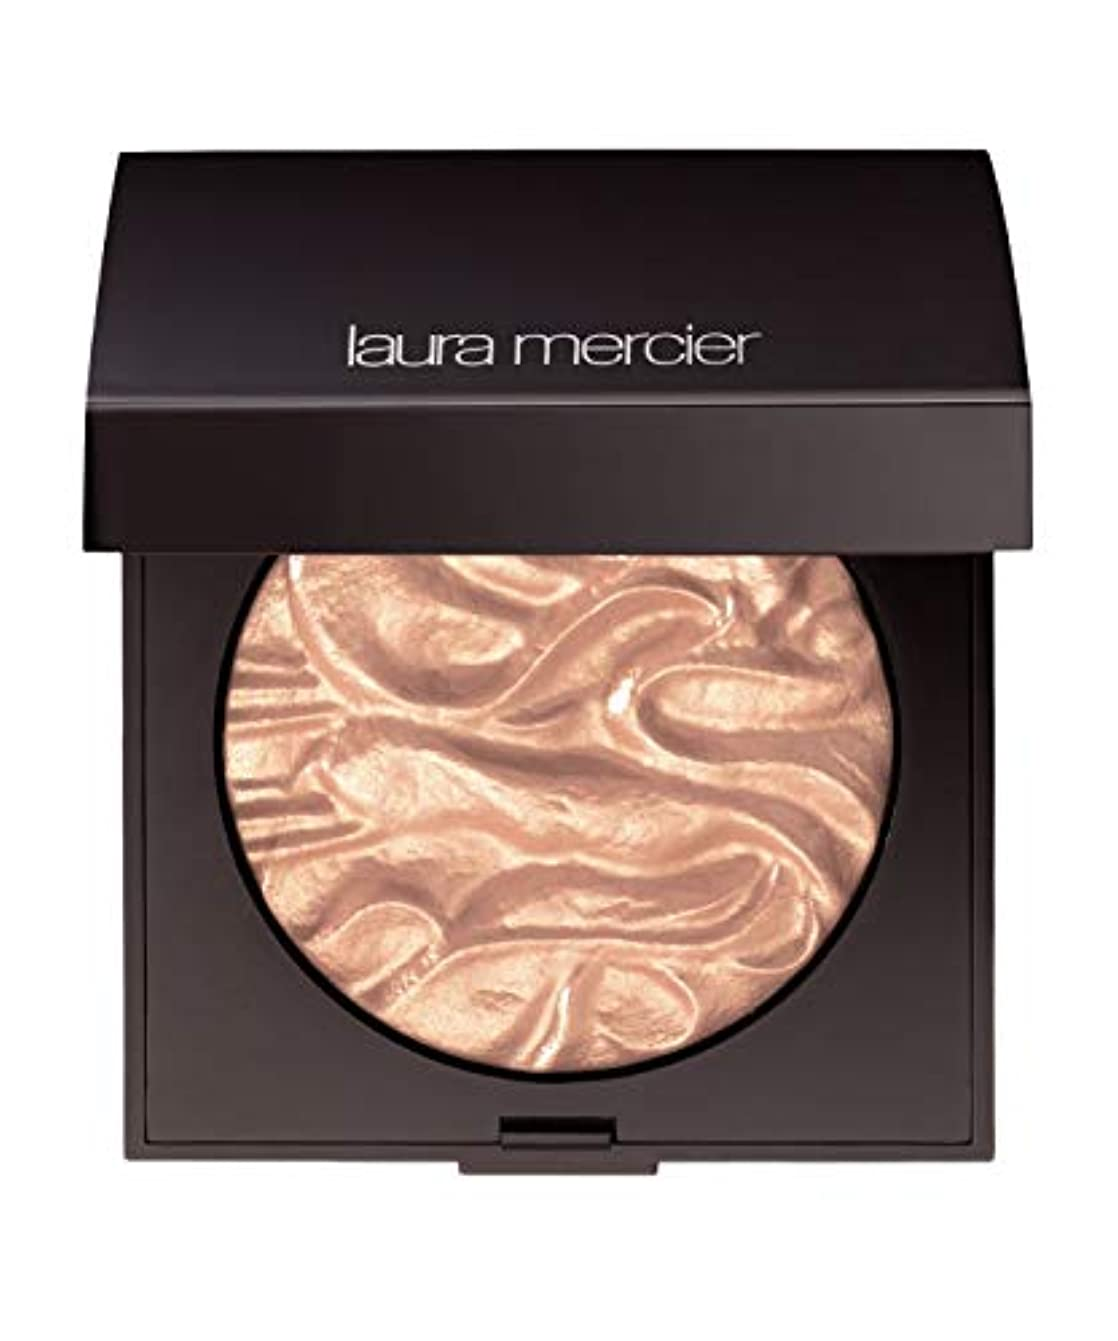 和らげるビジター日常的にLaura Mercier Face Illuminator - Devotion